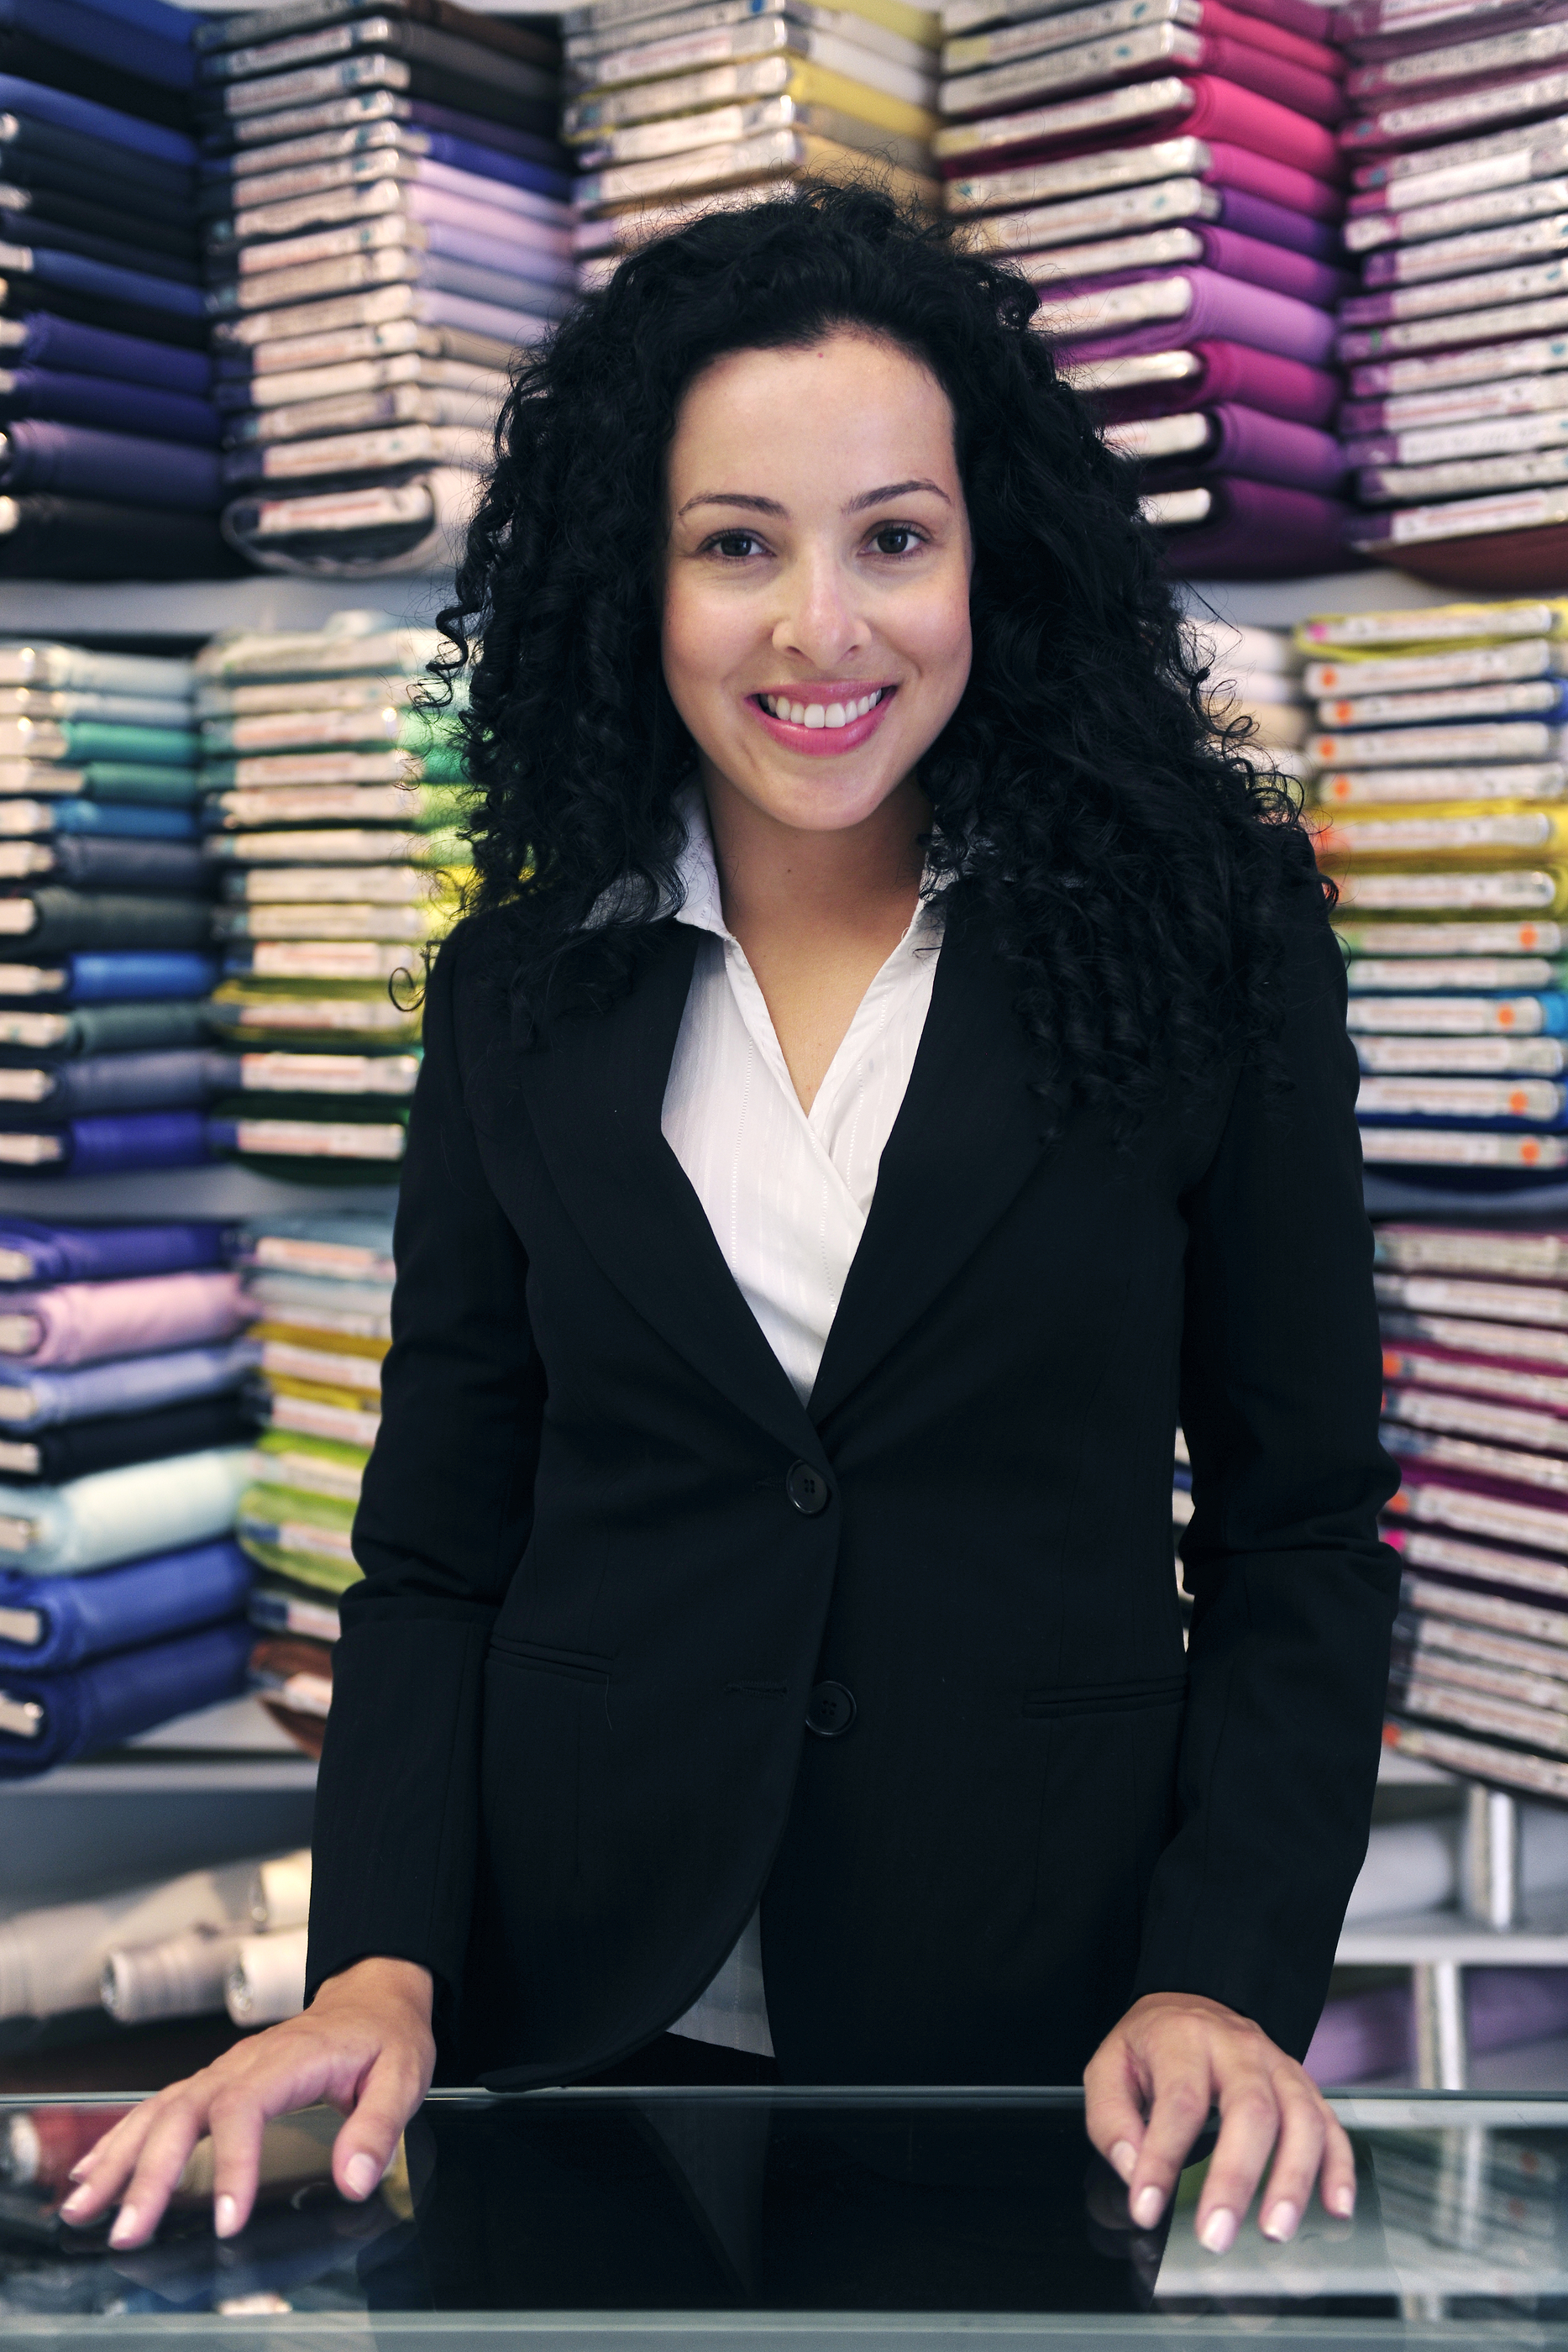 bigstock-Happy-Owner-Of-A-Fabric-Store-6901304.jpg